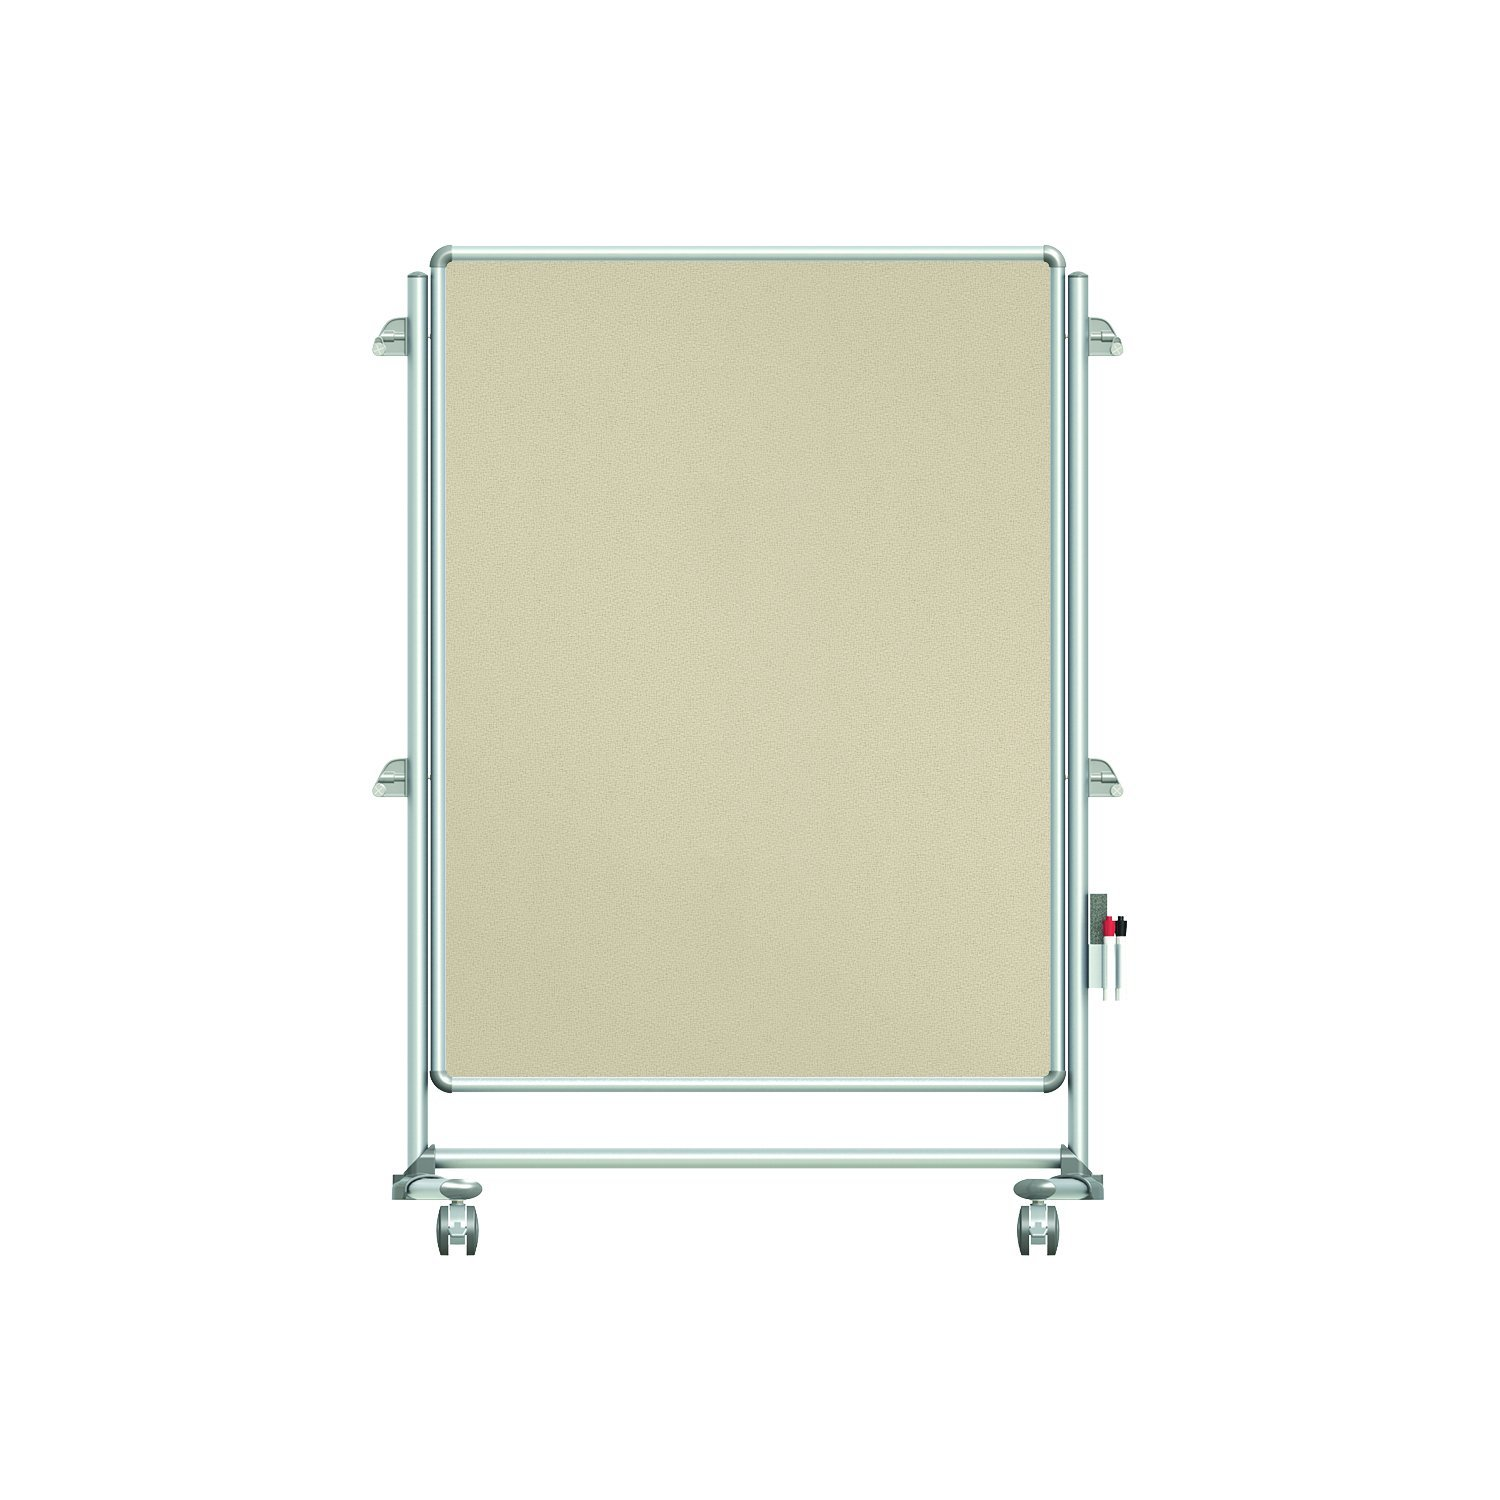 "Ghent 57-3/8"" x 40-3/8"" Nexus Jr. Partition Mobile Fabric Bulletin Board, Double-Sided, Beige (NEX223FFP-90)"